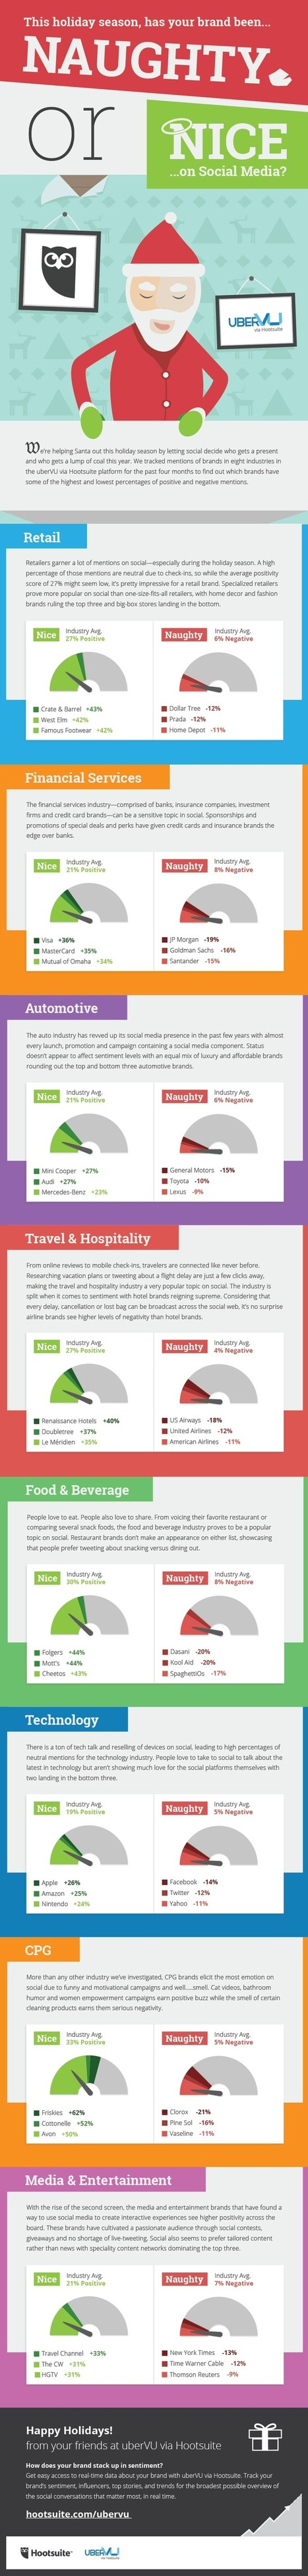 Which Brands Have Been Naughty (Or Nice) On Social This Holiday Season? #INFOGRAPHIC | social media marketing | Scoop.it